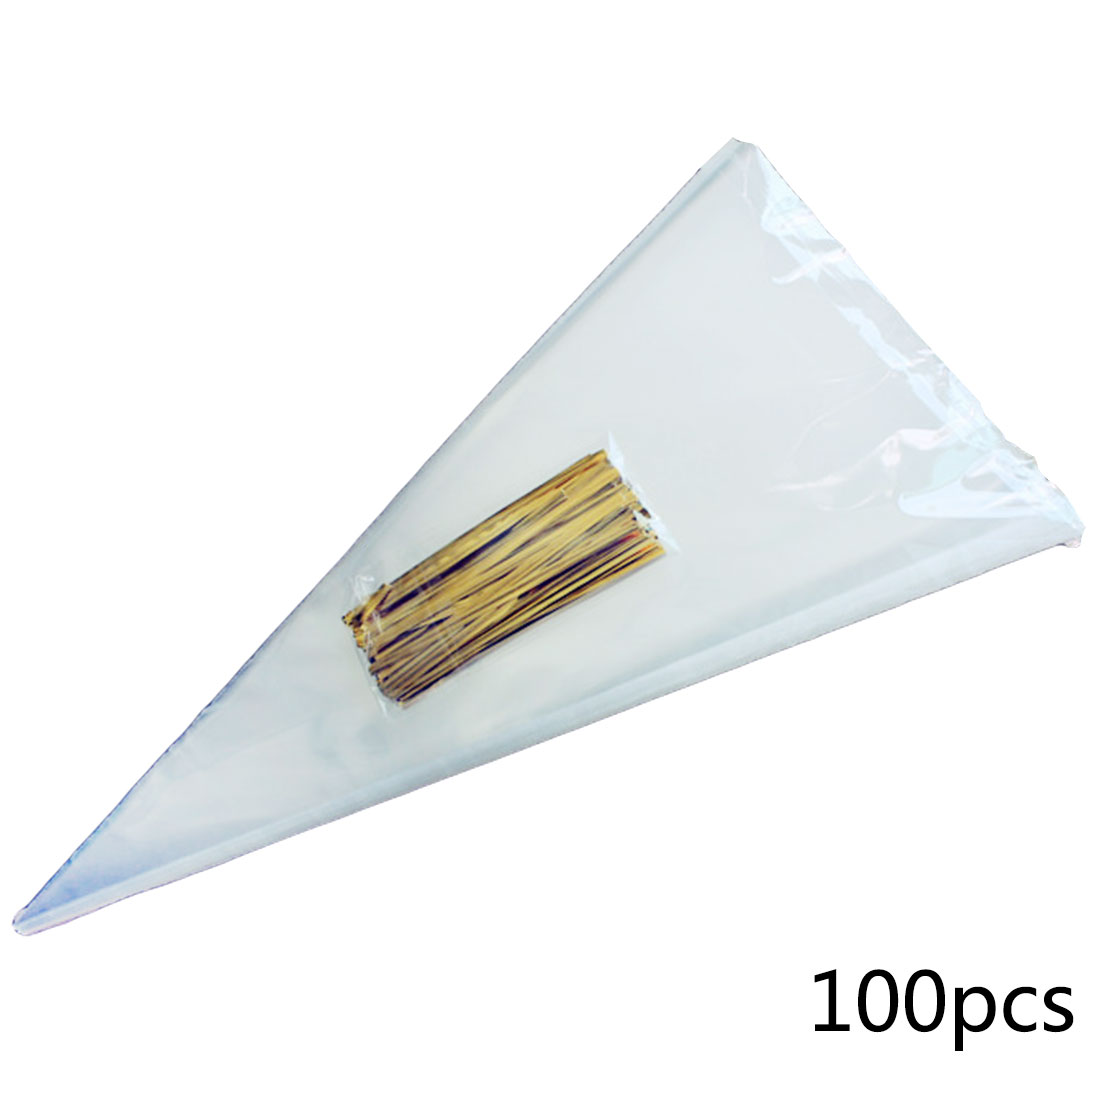 100pcs Transparent Cone Bags Clear Cello Gift Bags Sweets Treat Bags With Gold Silver Twist Ties Pouches Decoration 13*25cm